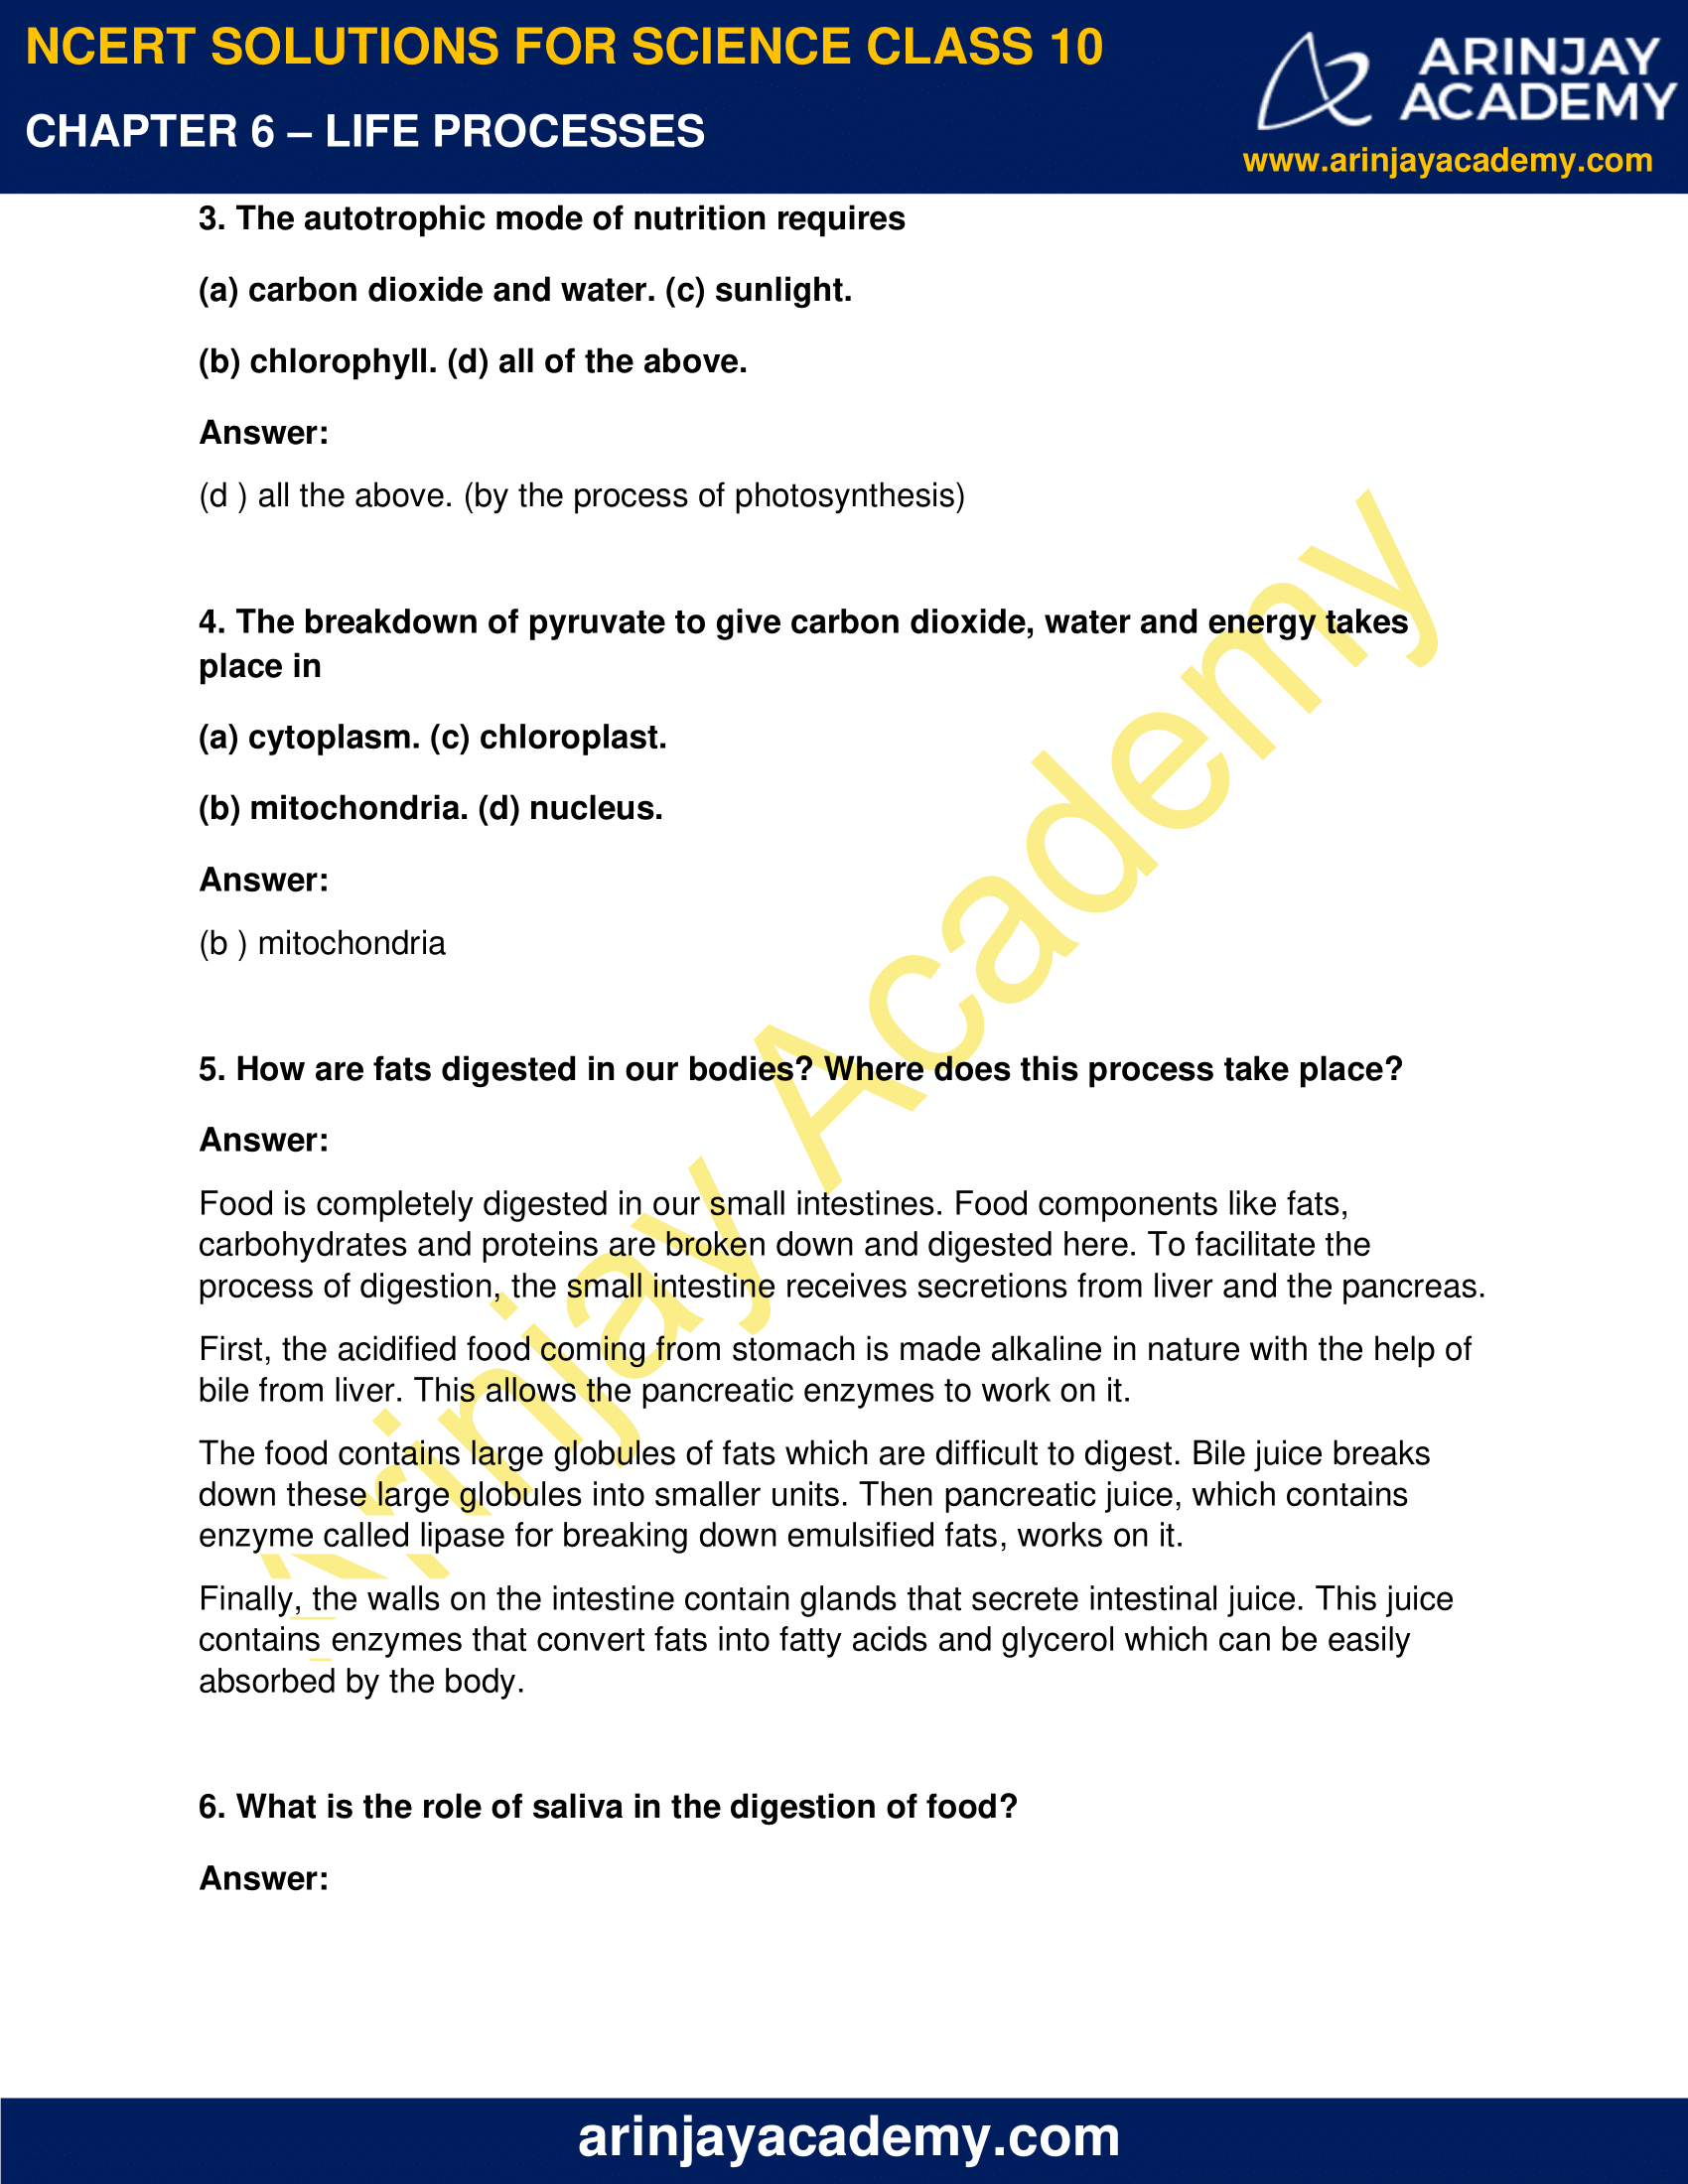 NCERT Solutions for Class 10 Science Chapter 6 image 8